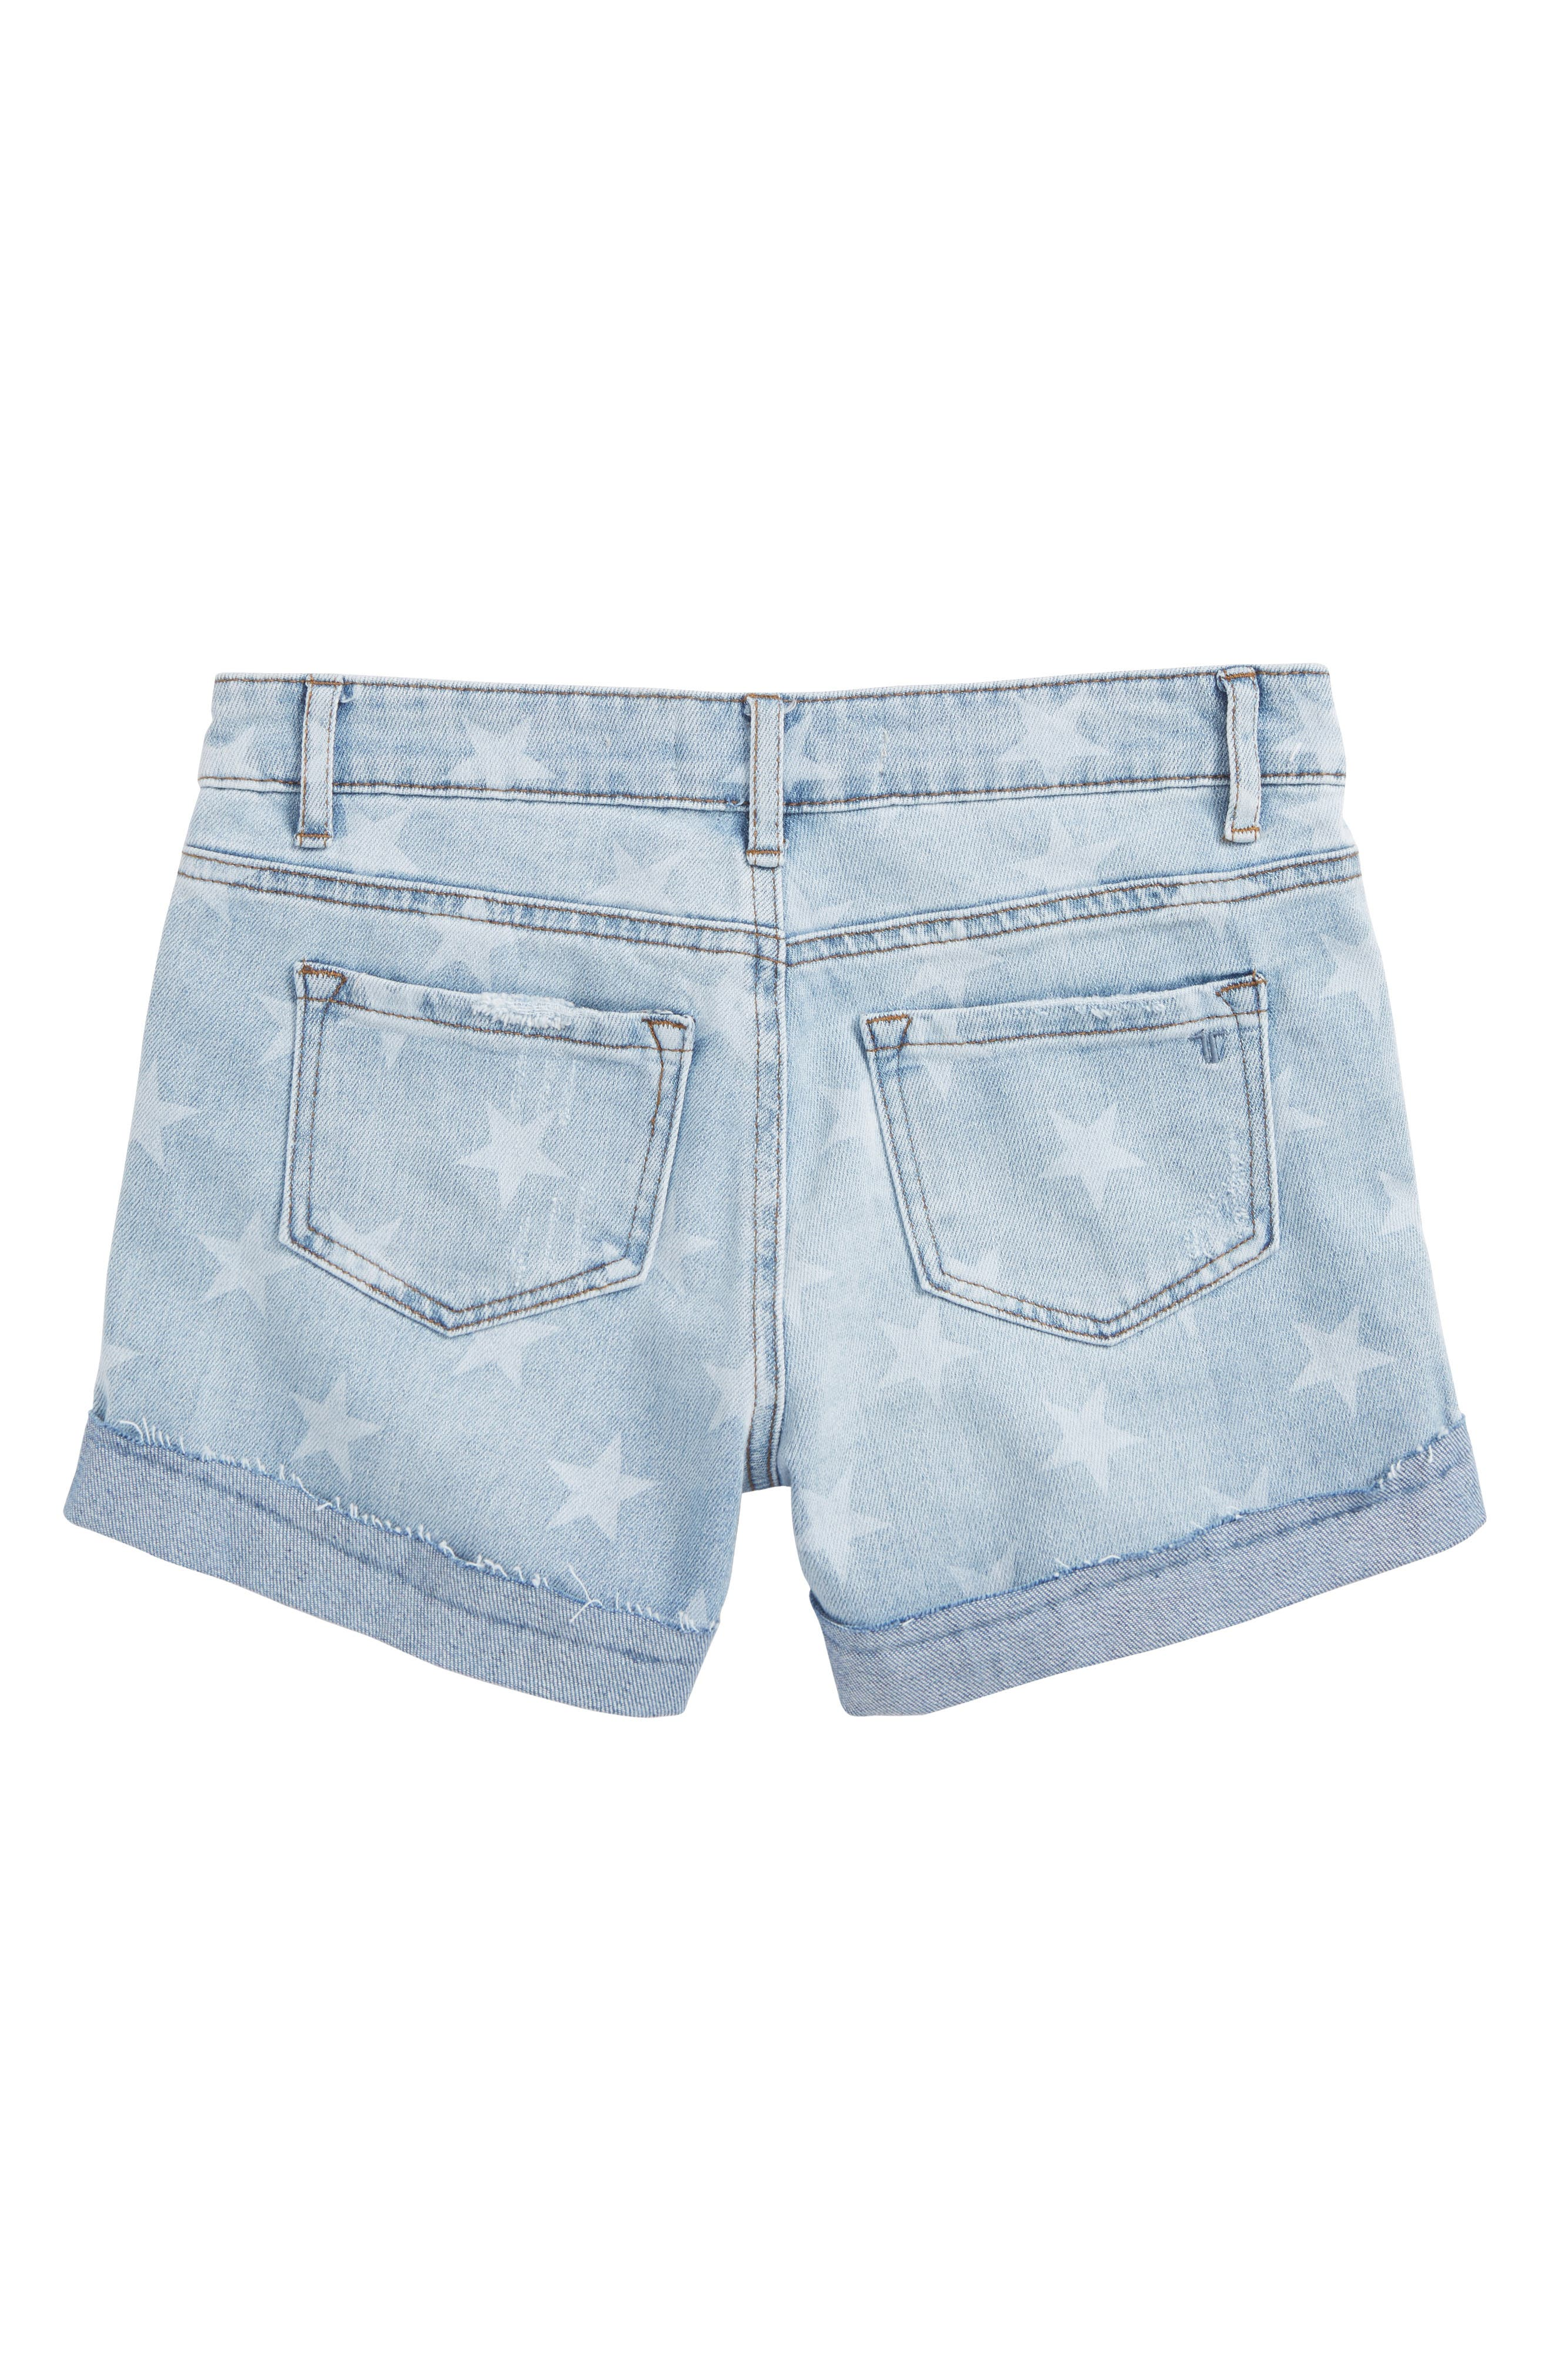 Star Roll Distressed Denim Shorts,                             Alternate thumbnail 2, color,                             461